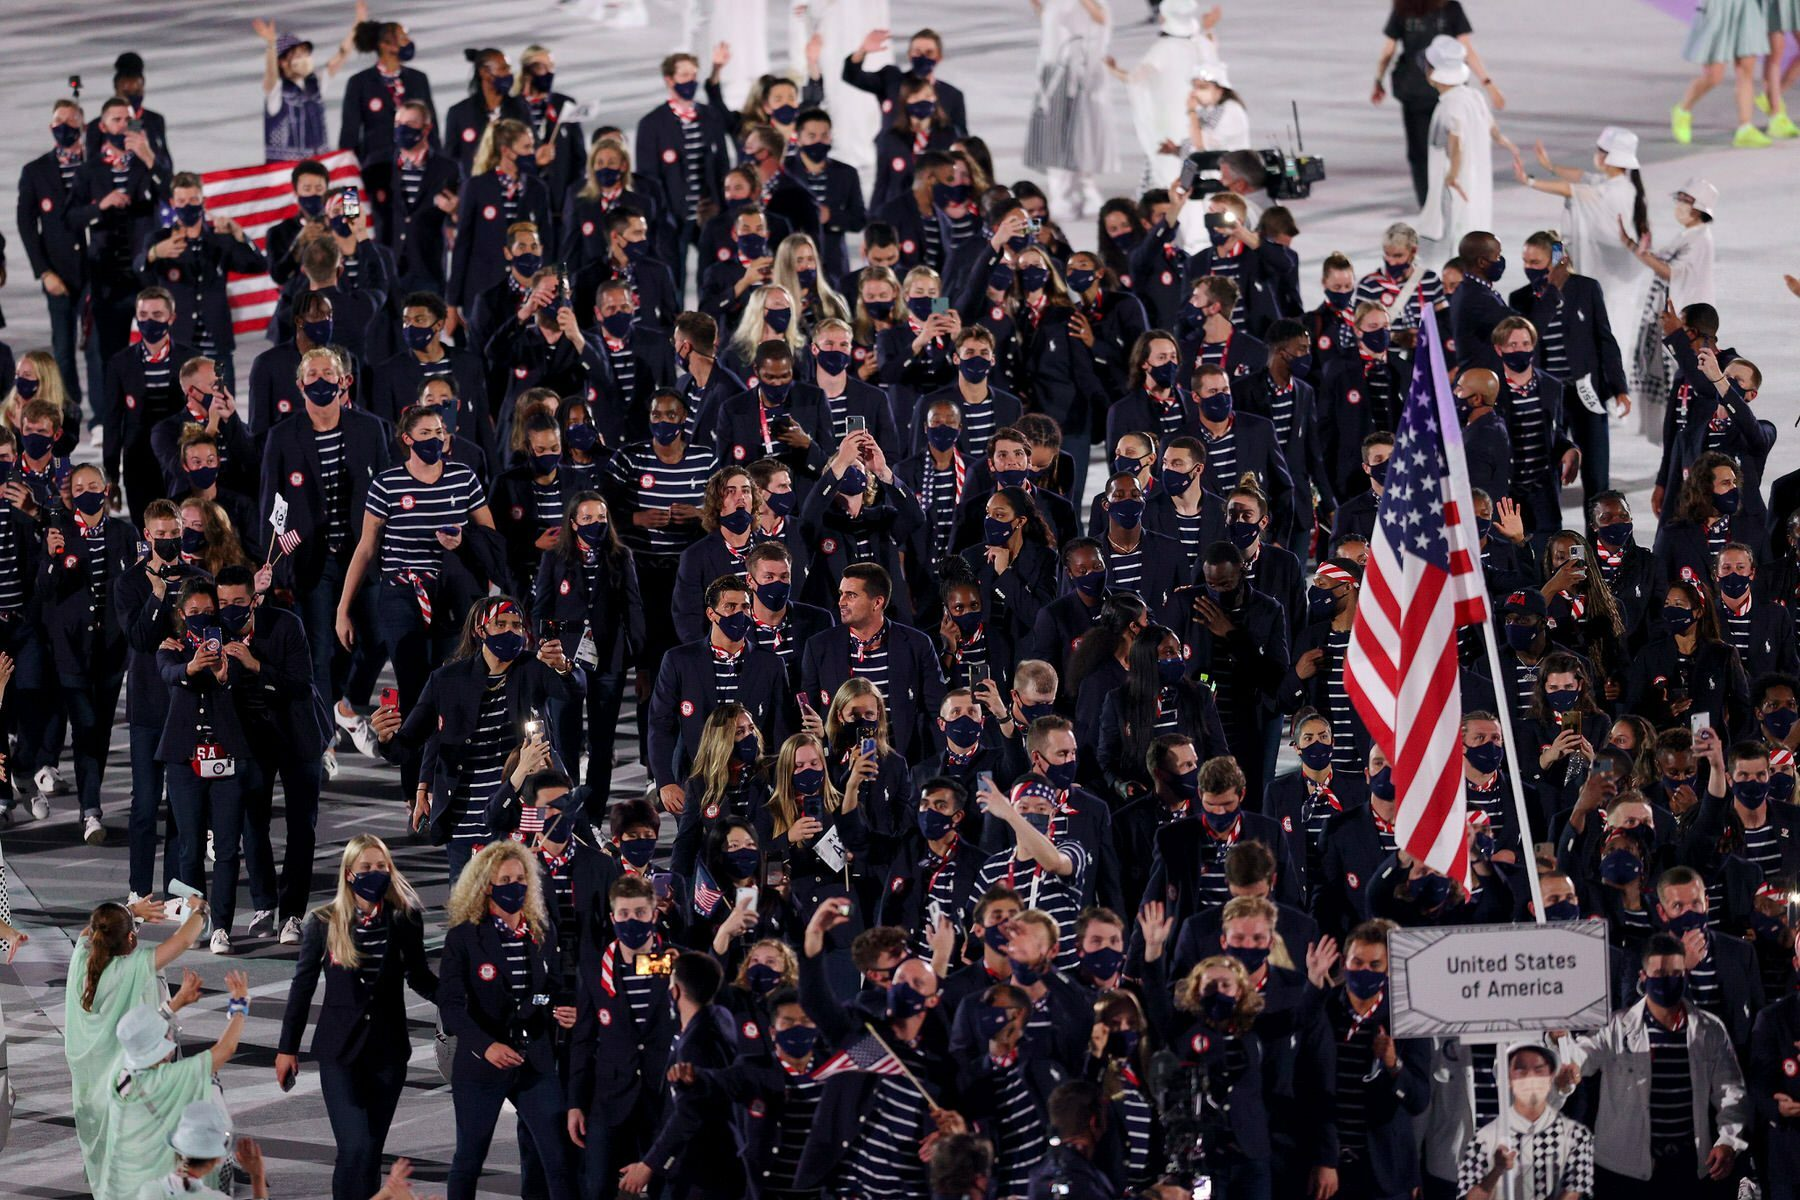 Athletes of team USA enjoy the atmosphere during the Opening Ceremony of the Tokyo 2020 Olympic Games.